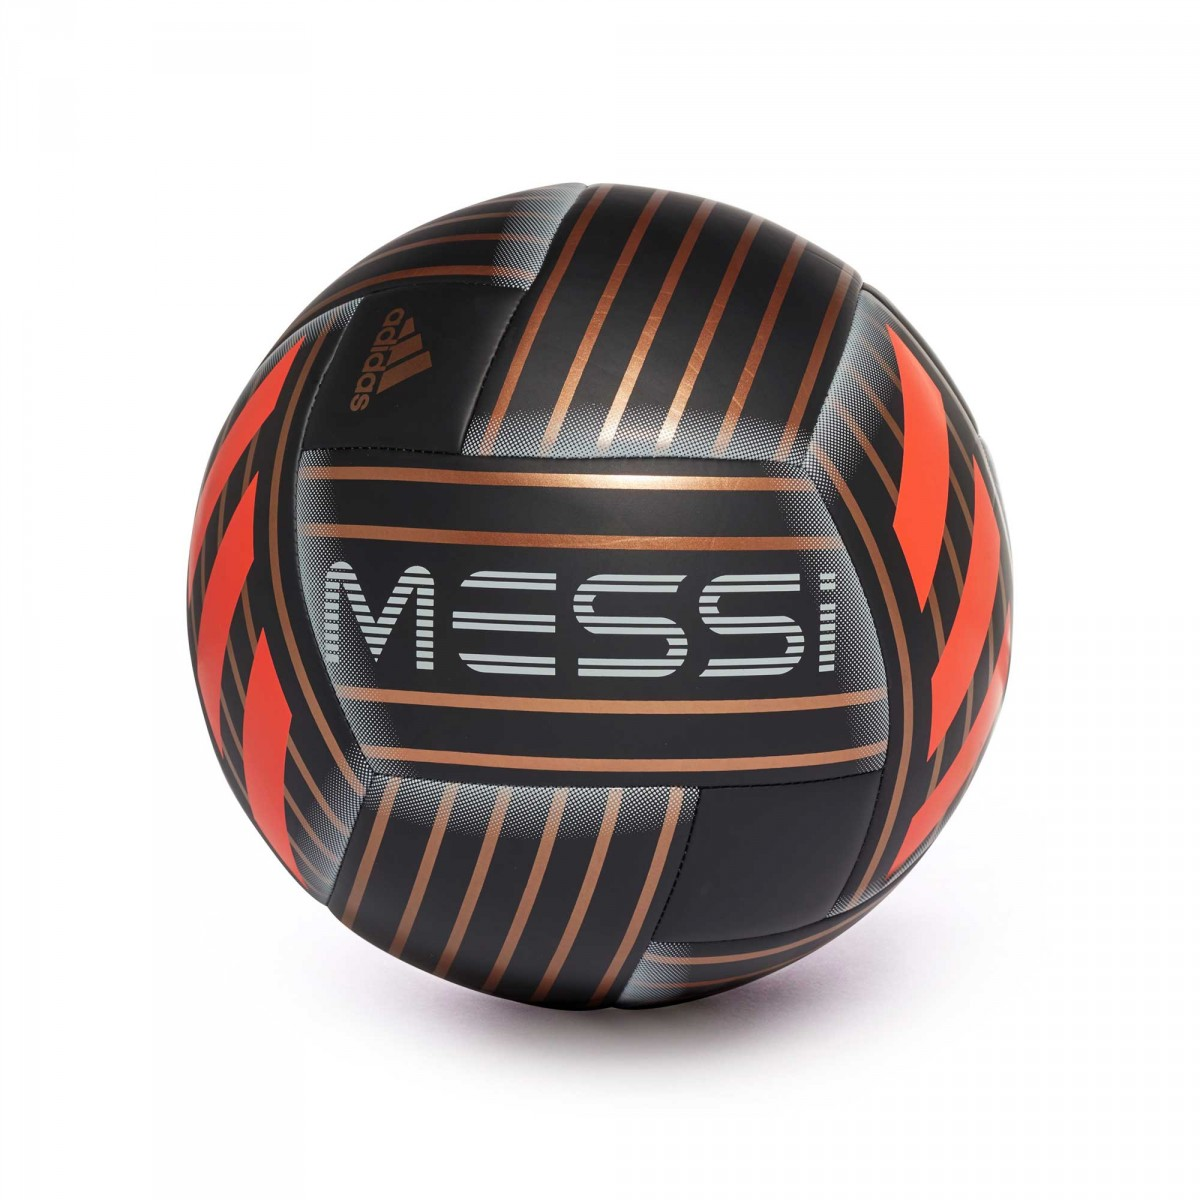 Balón adidas Messi Black-Tactile gold metallic-Solar red ... 9352b4d375294